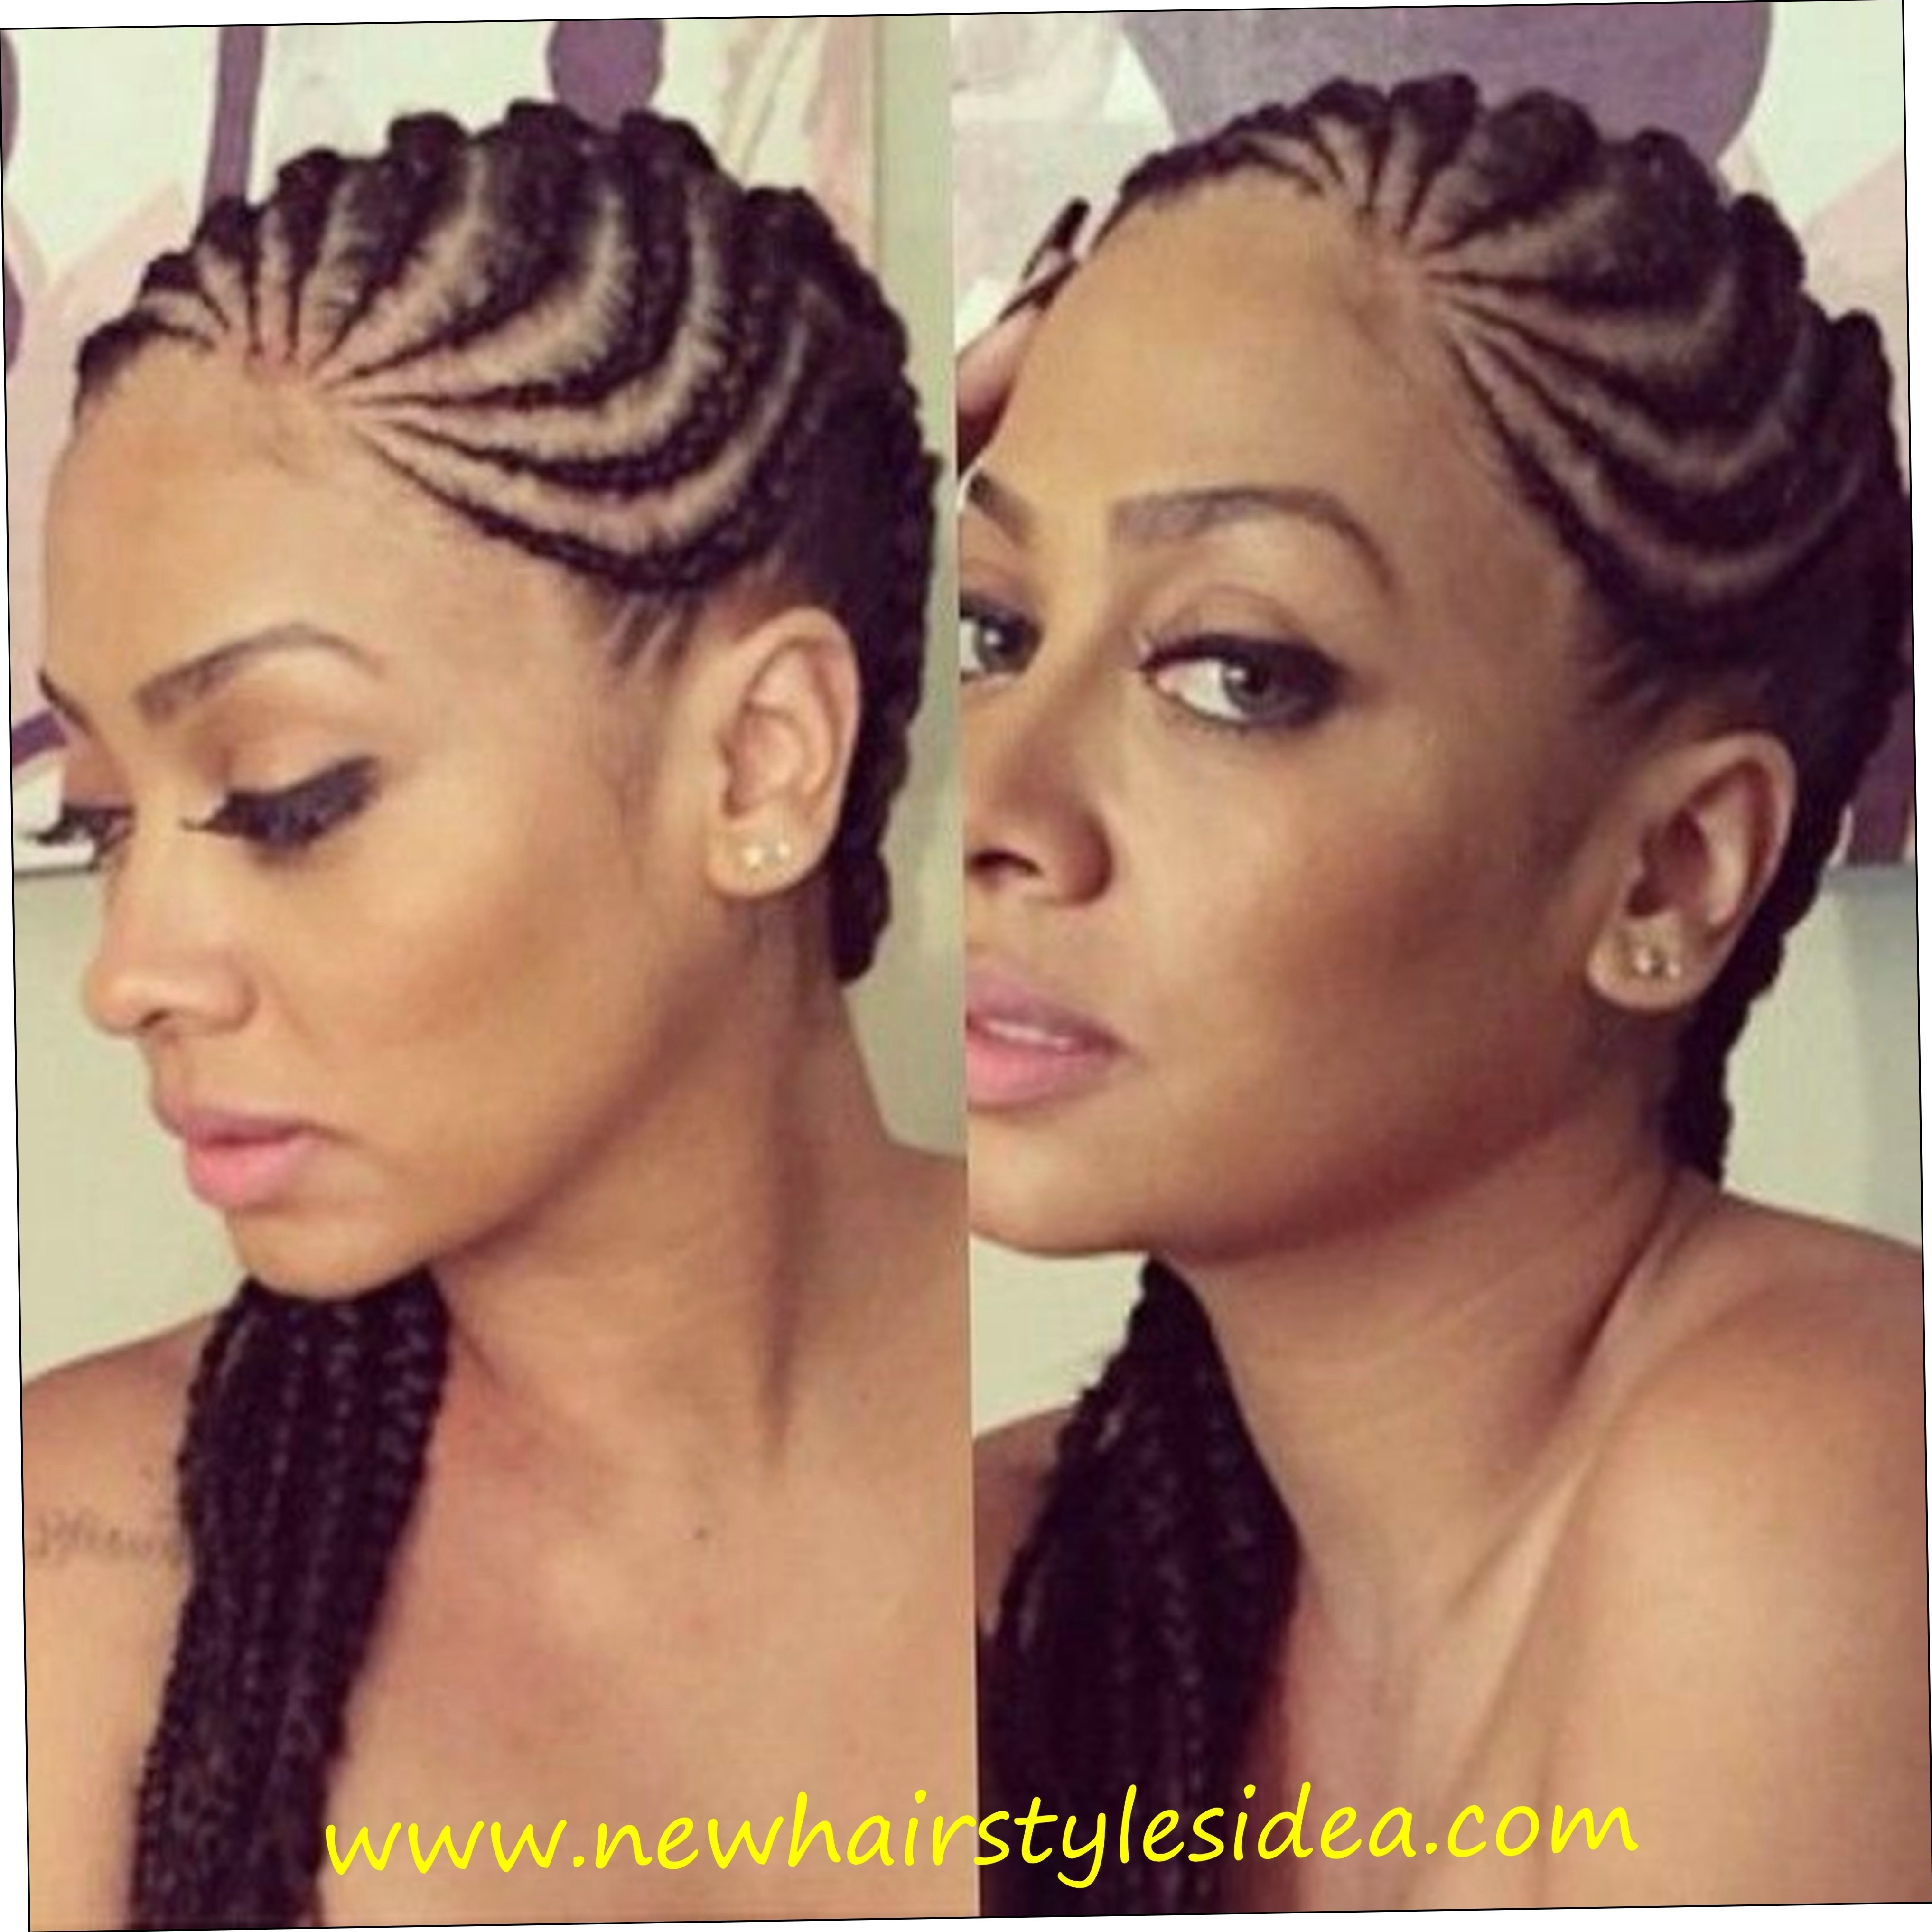 Black Girl Cornrow Hairstyles Cornrows Hairstyles For Women 2016 Throughout Current Cornrows Hairstyles For Ladies (View 5 of 15)